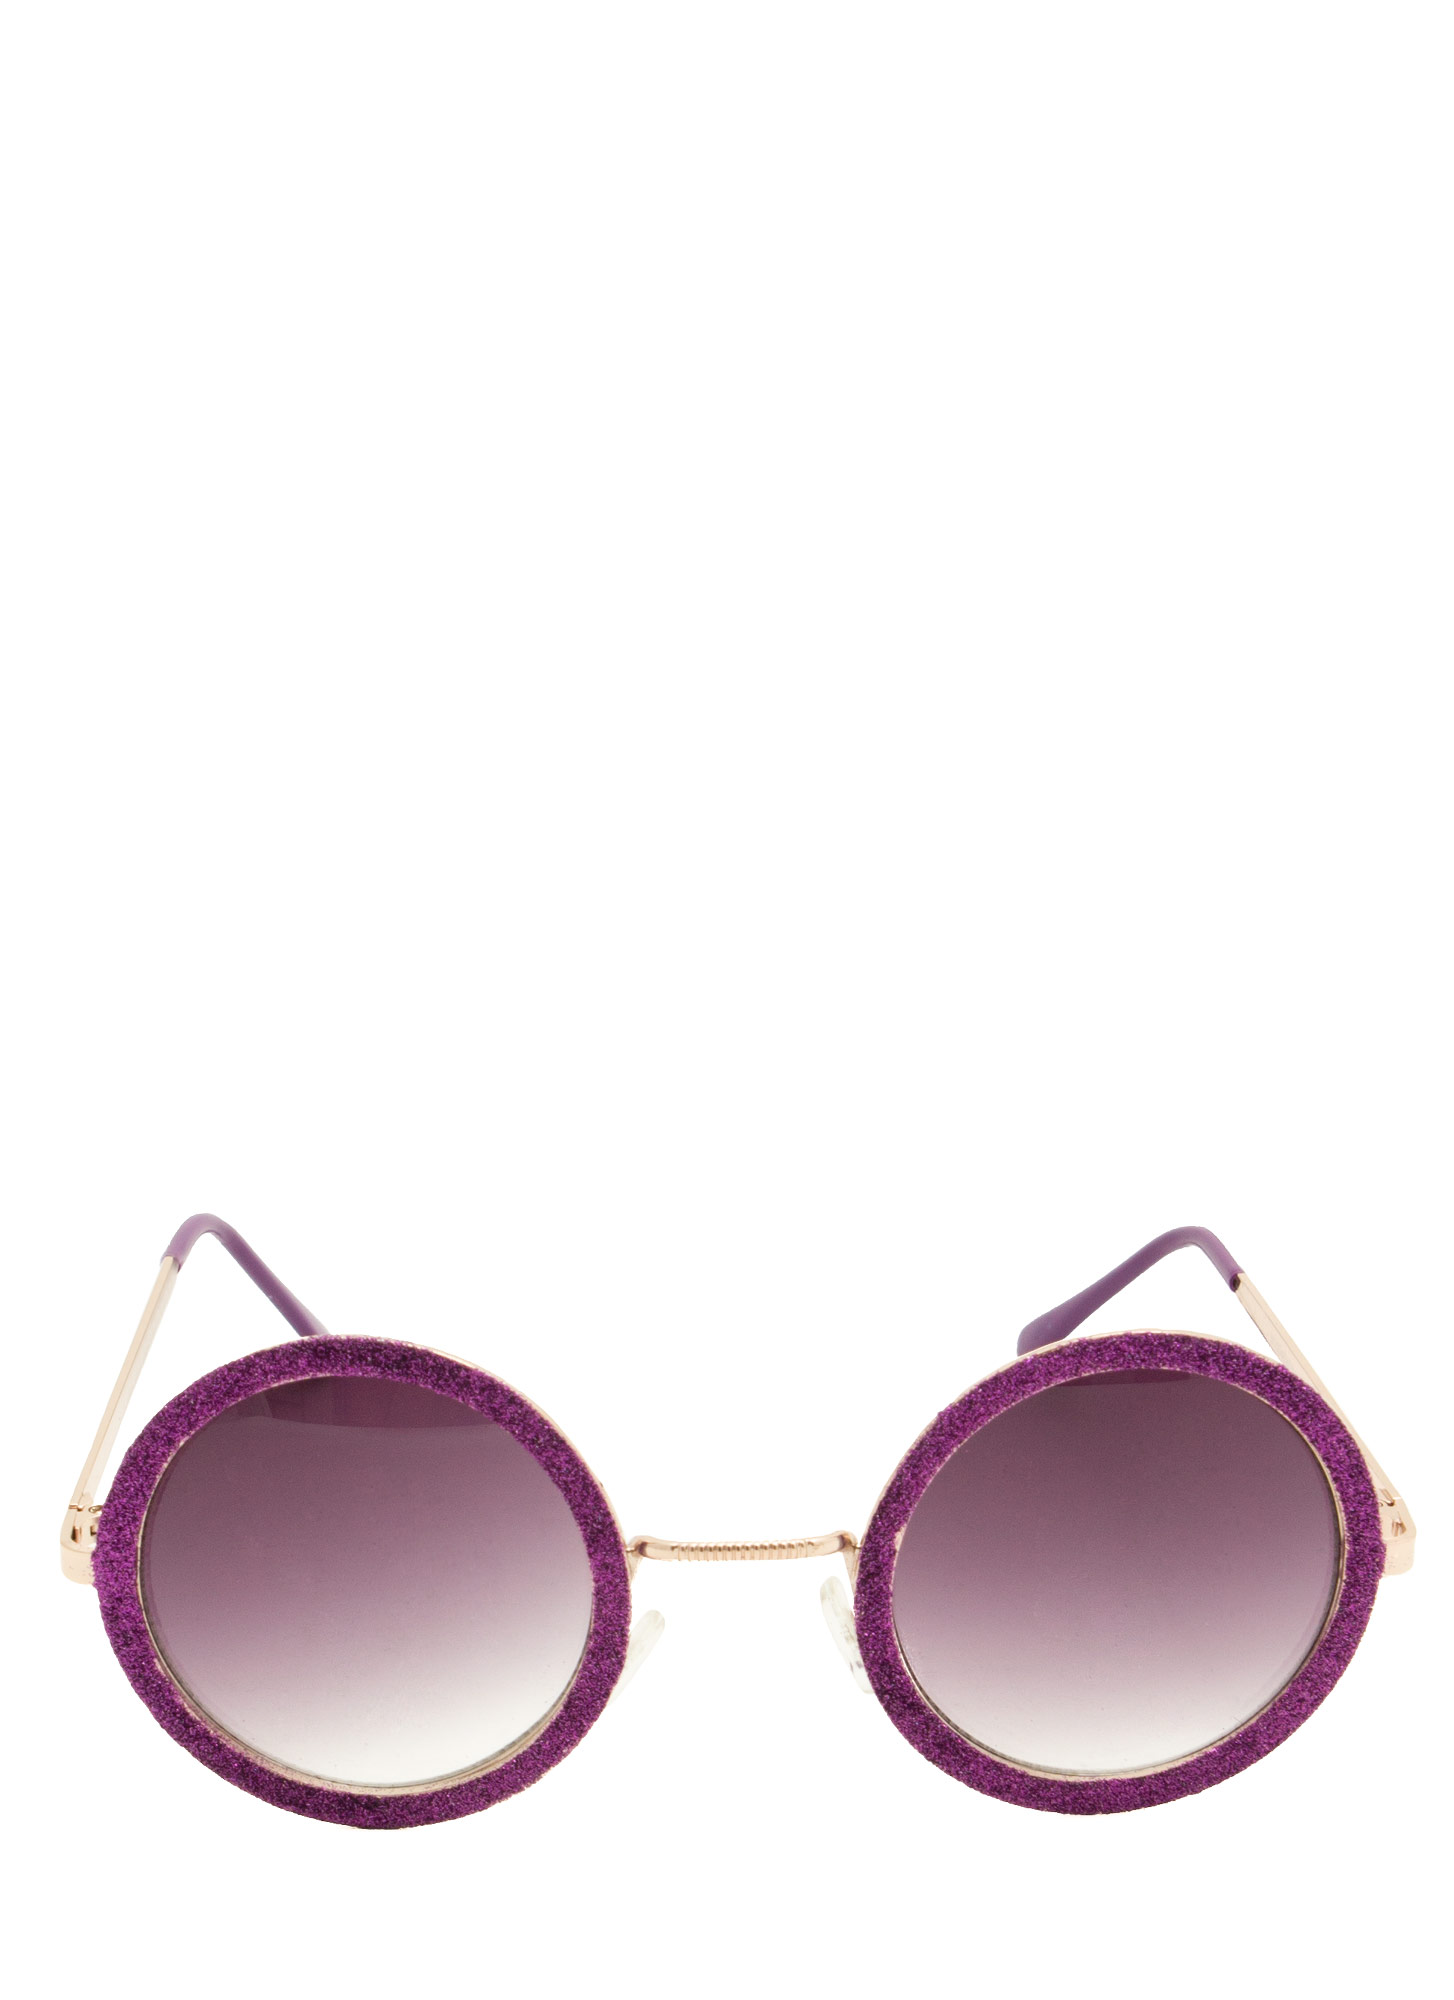 Glitzy Round Sunglasses PURPLE